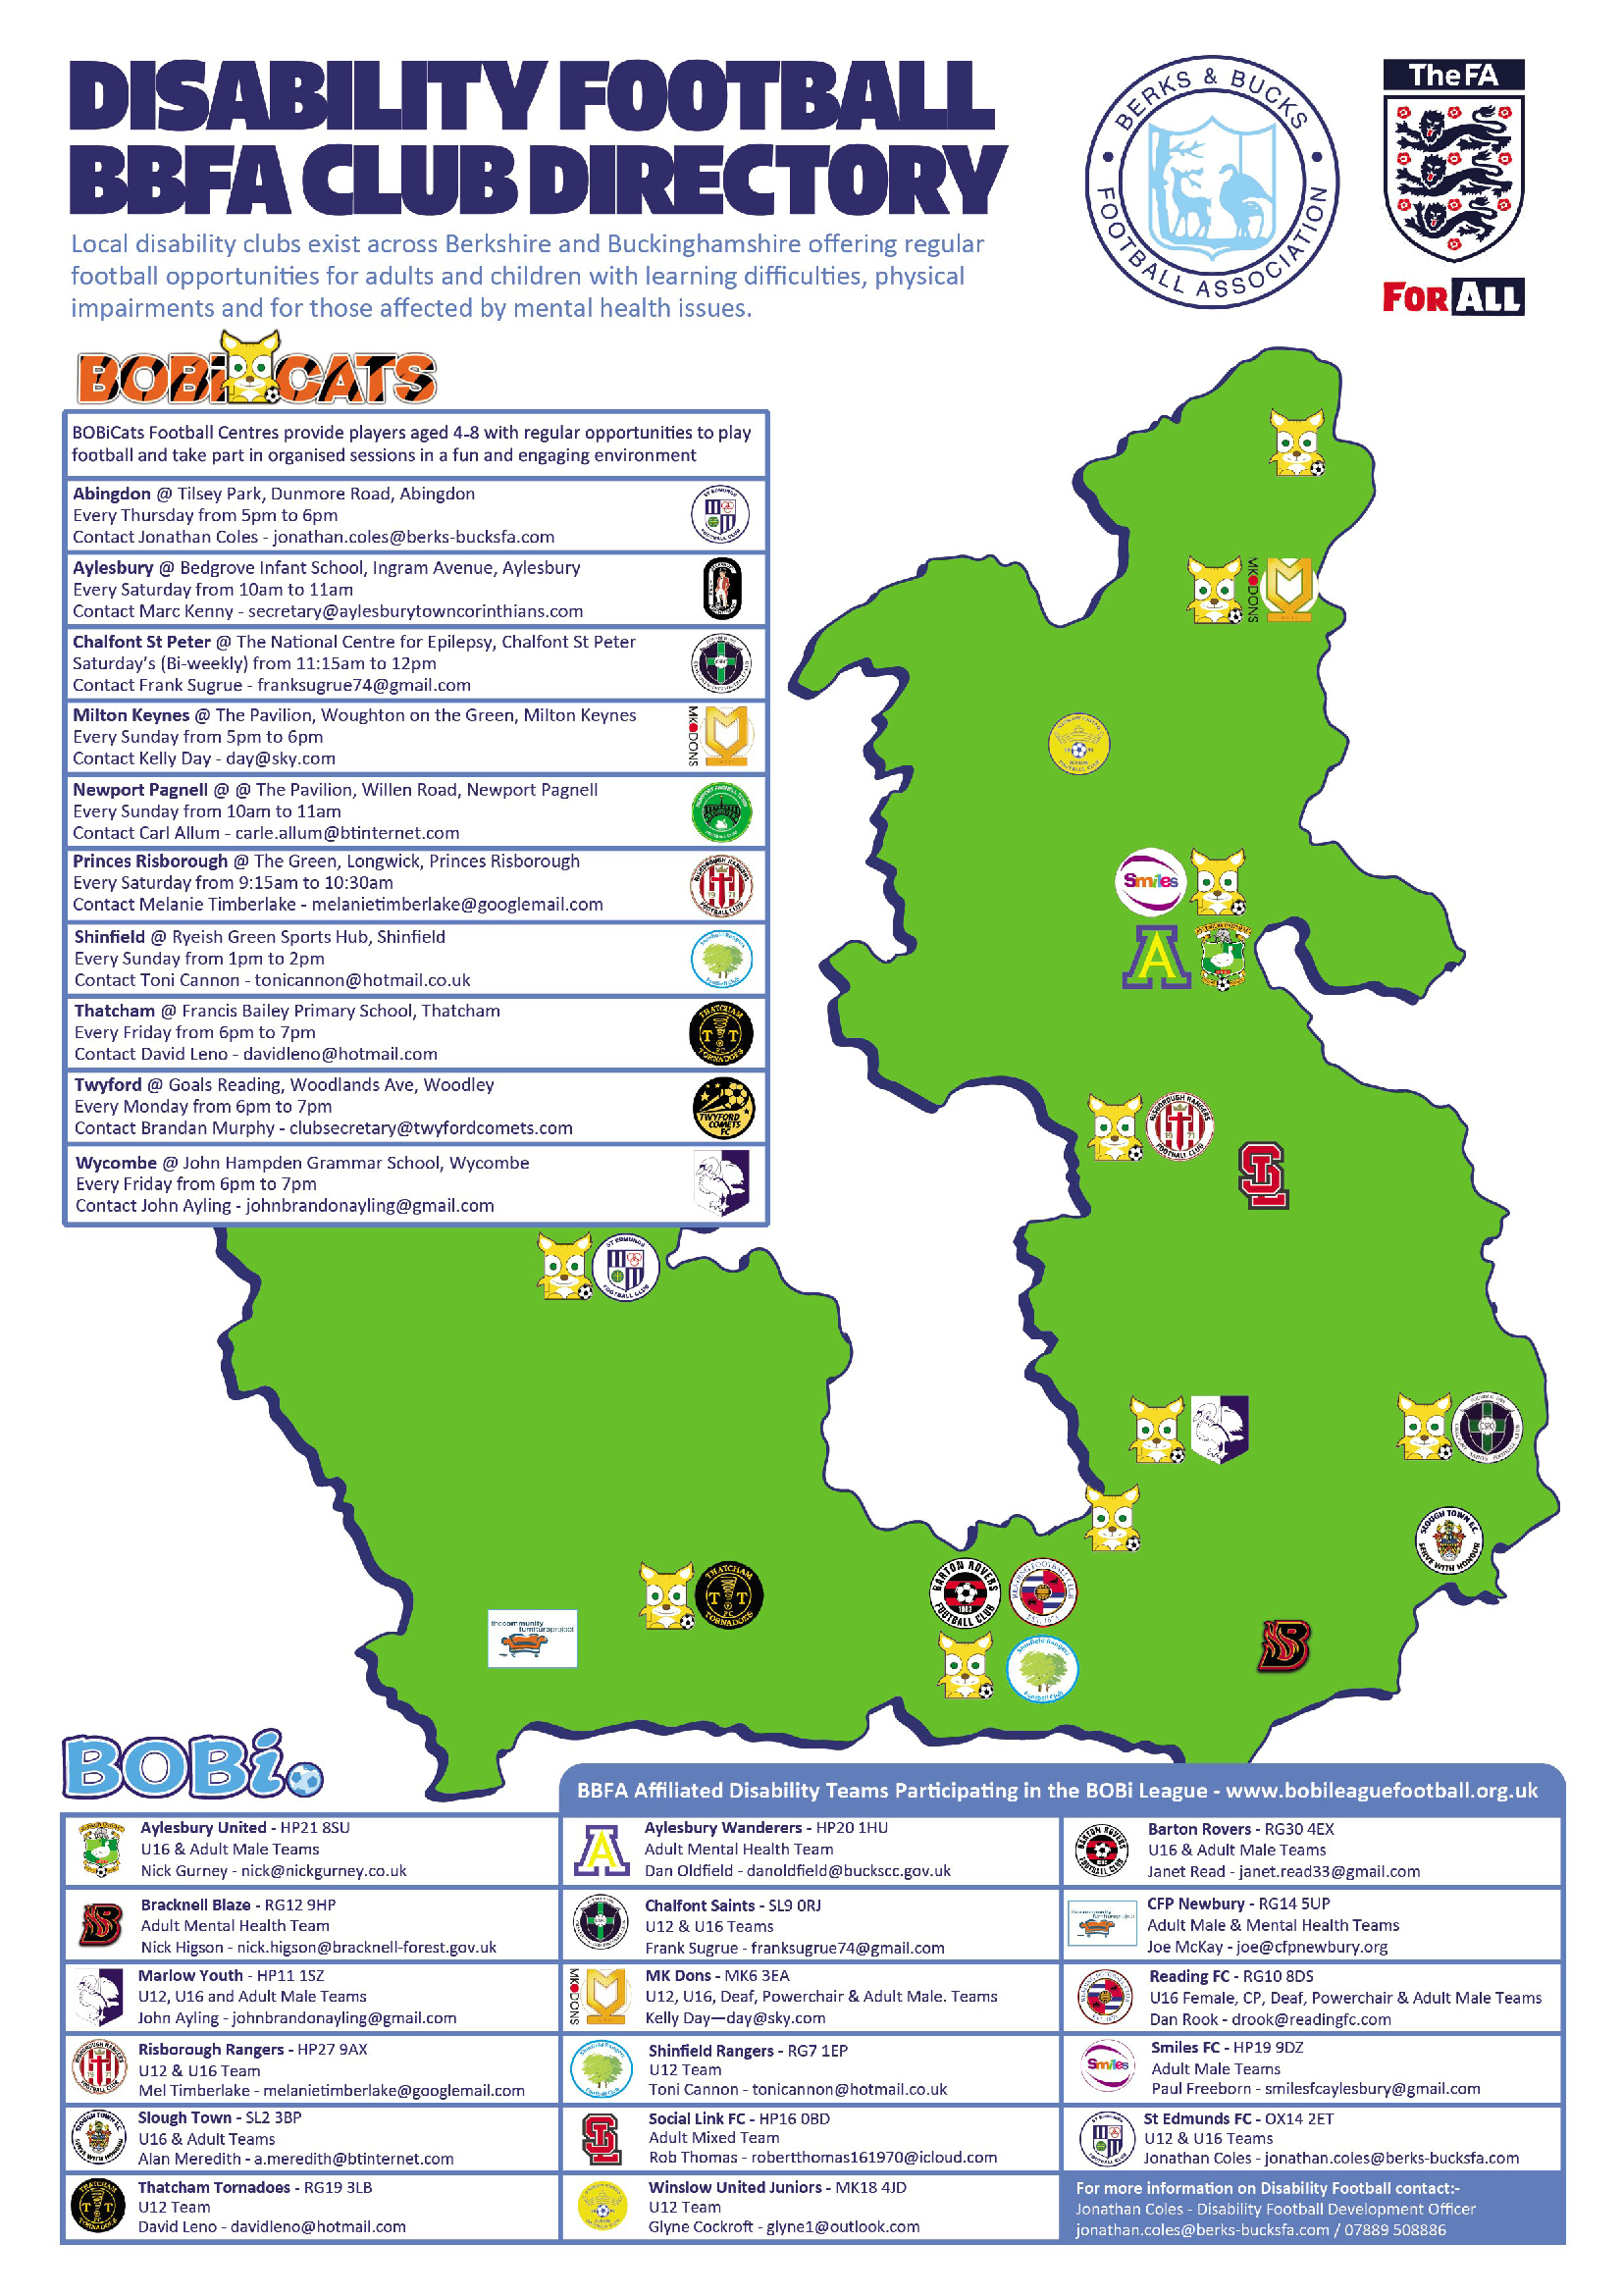 BBFA Club Directory Map